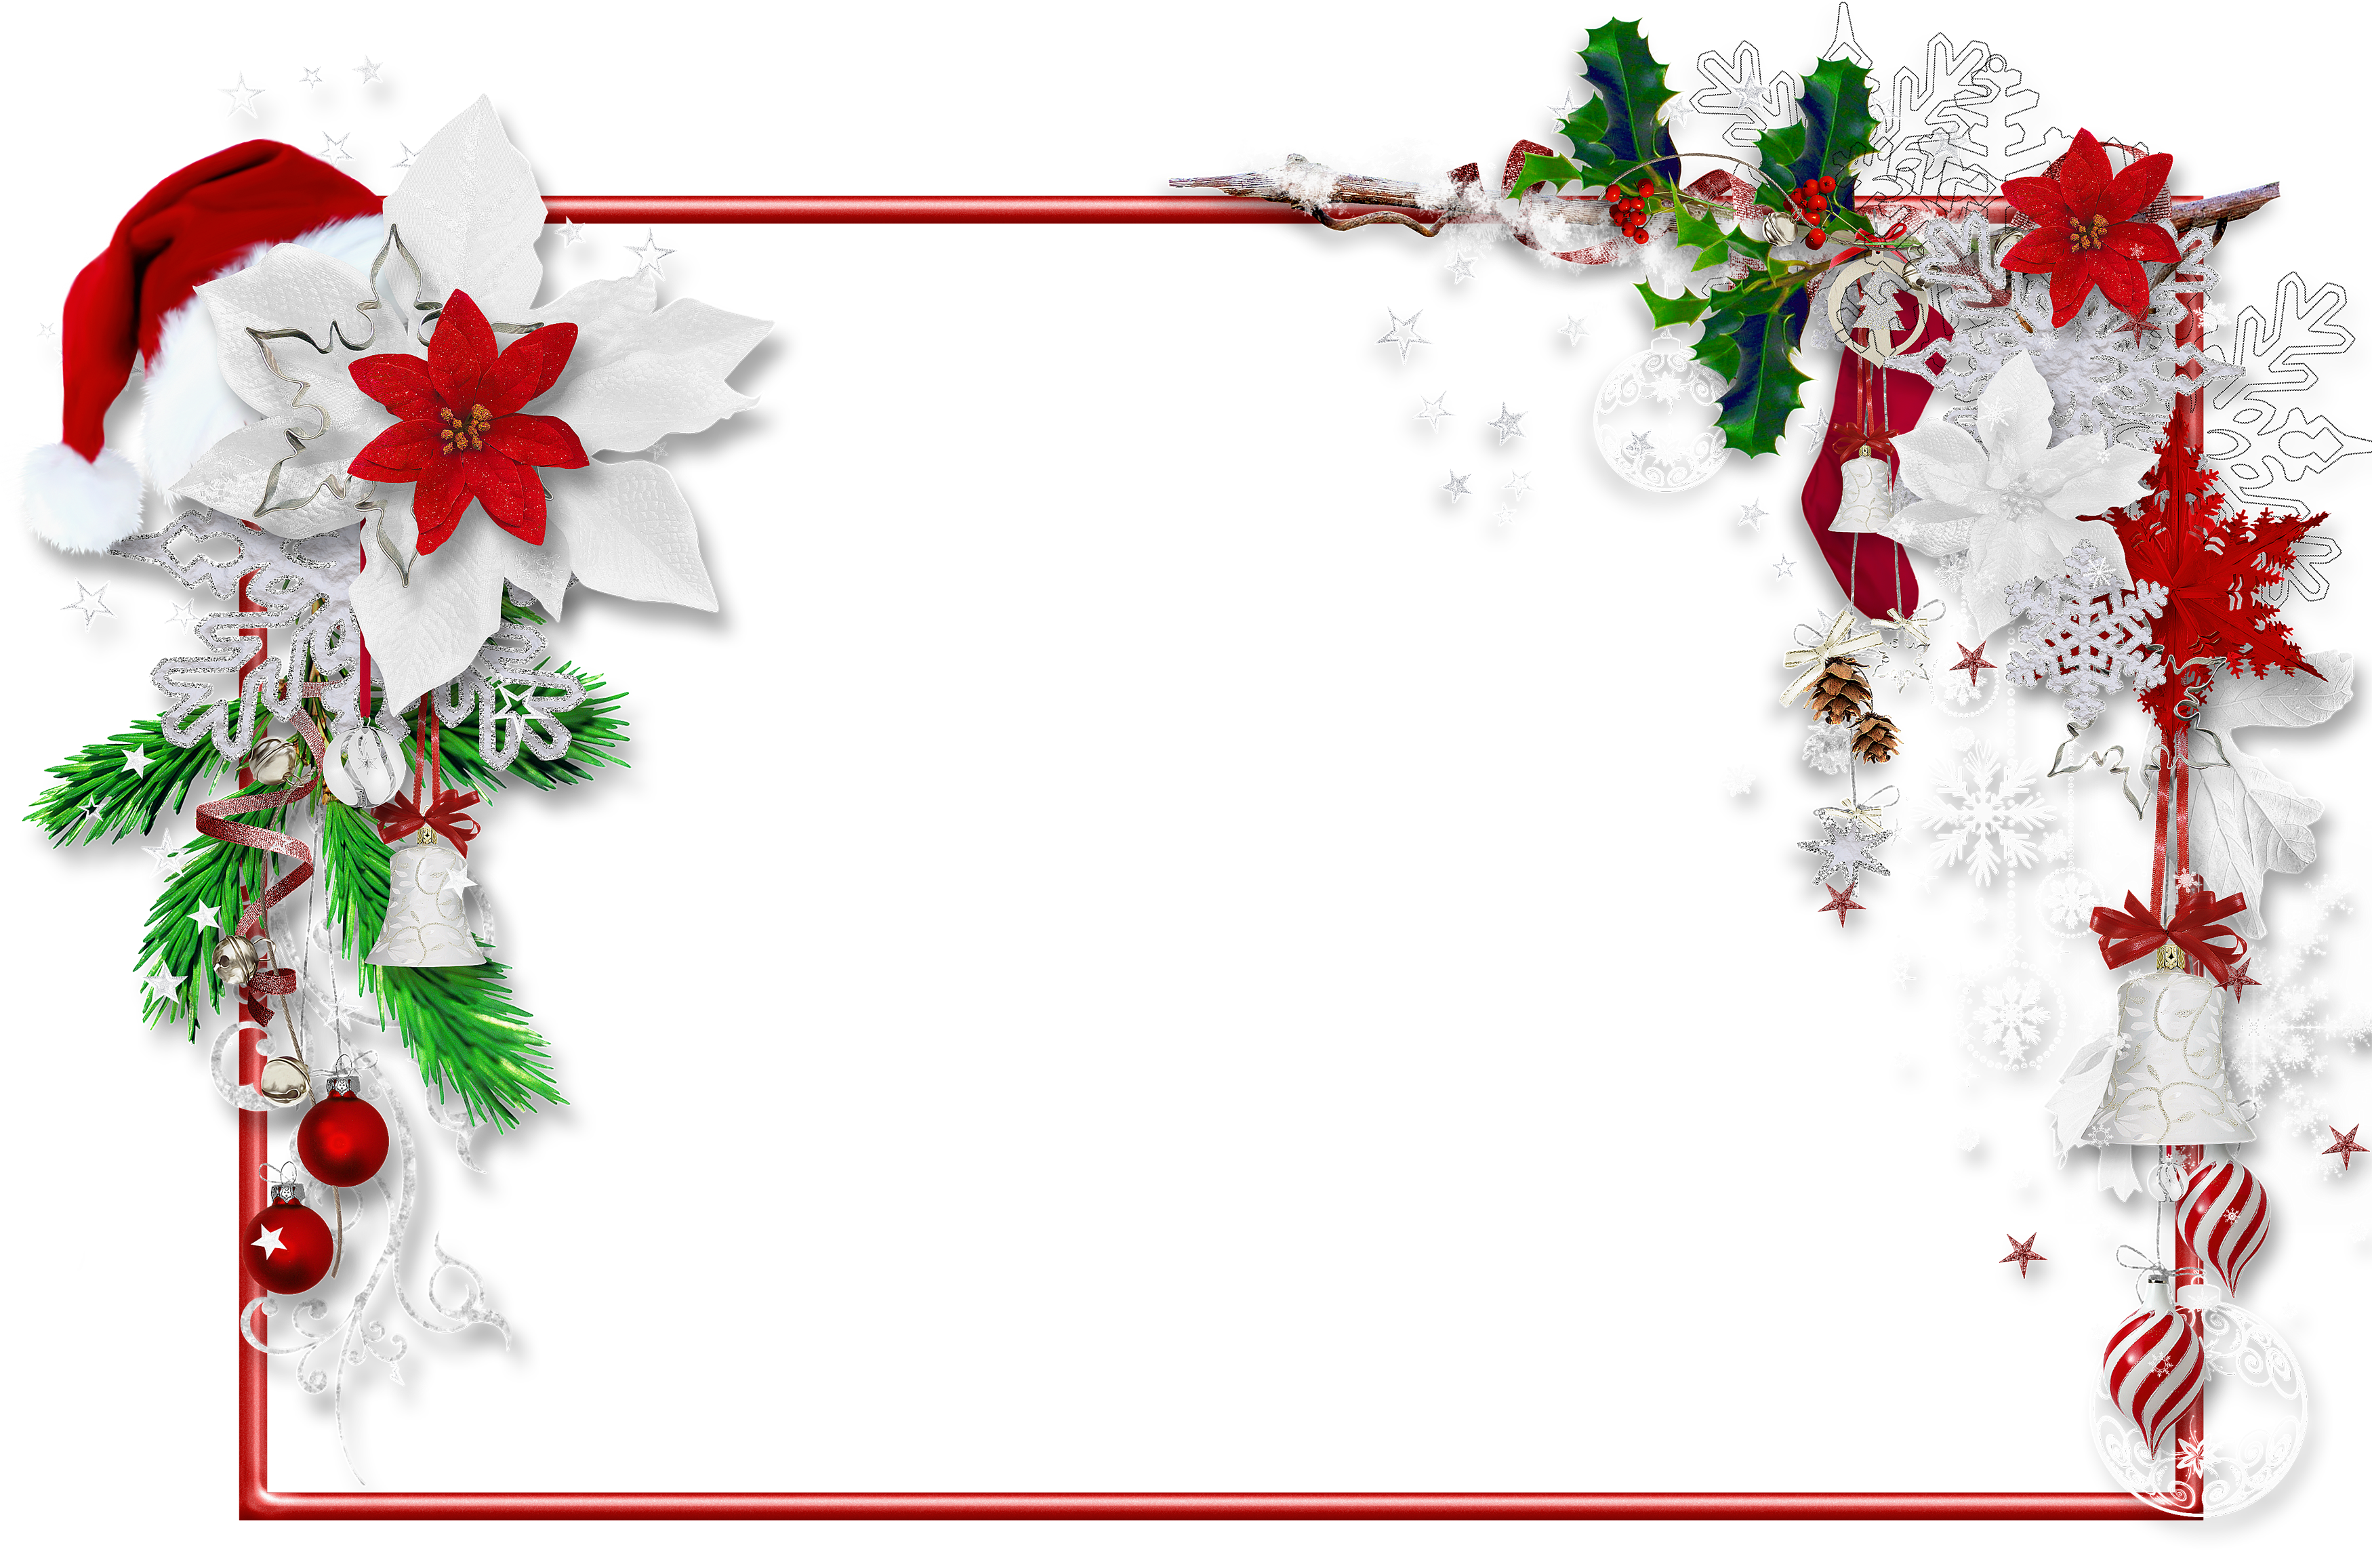 Christmas PNG Photo Frame with Santa Hat and Mistletoe